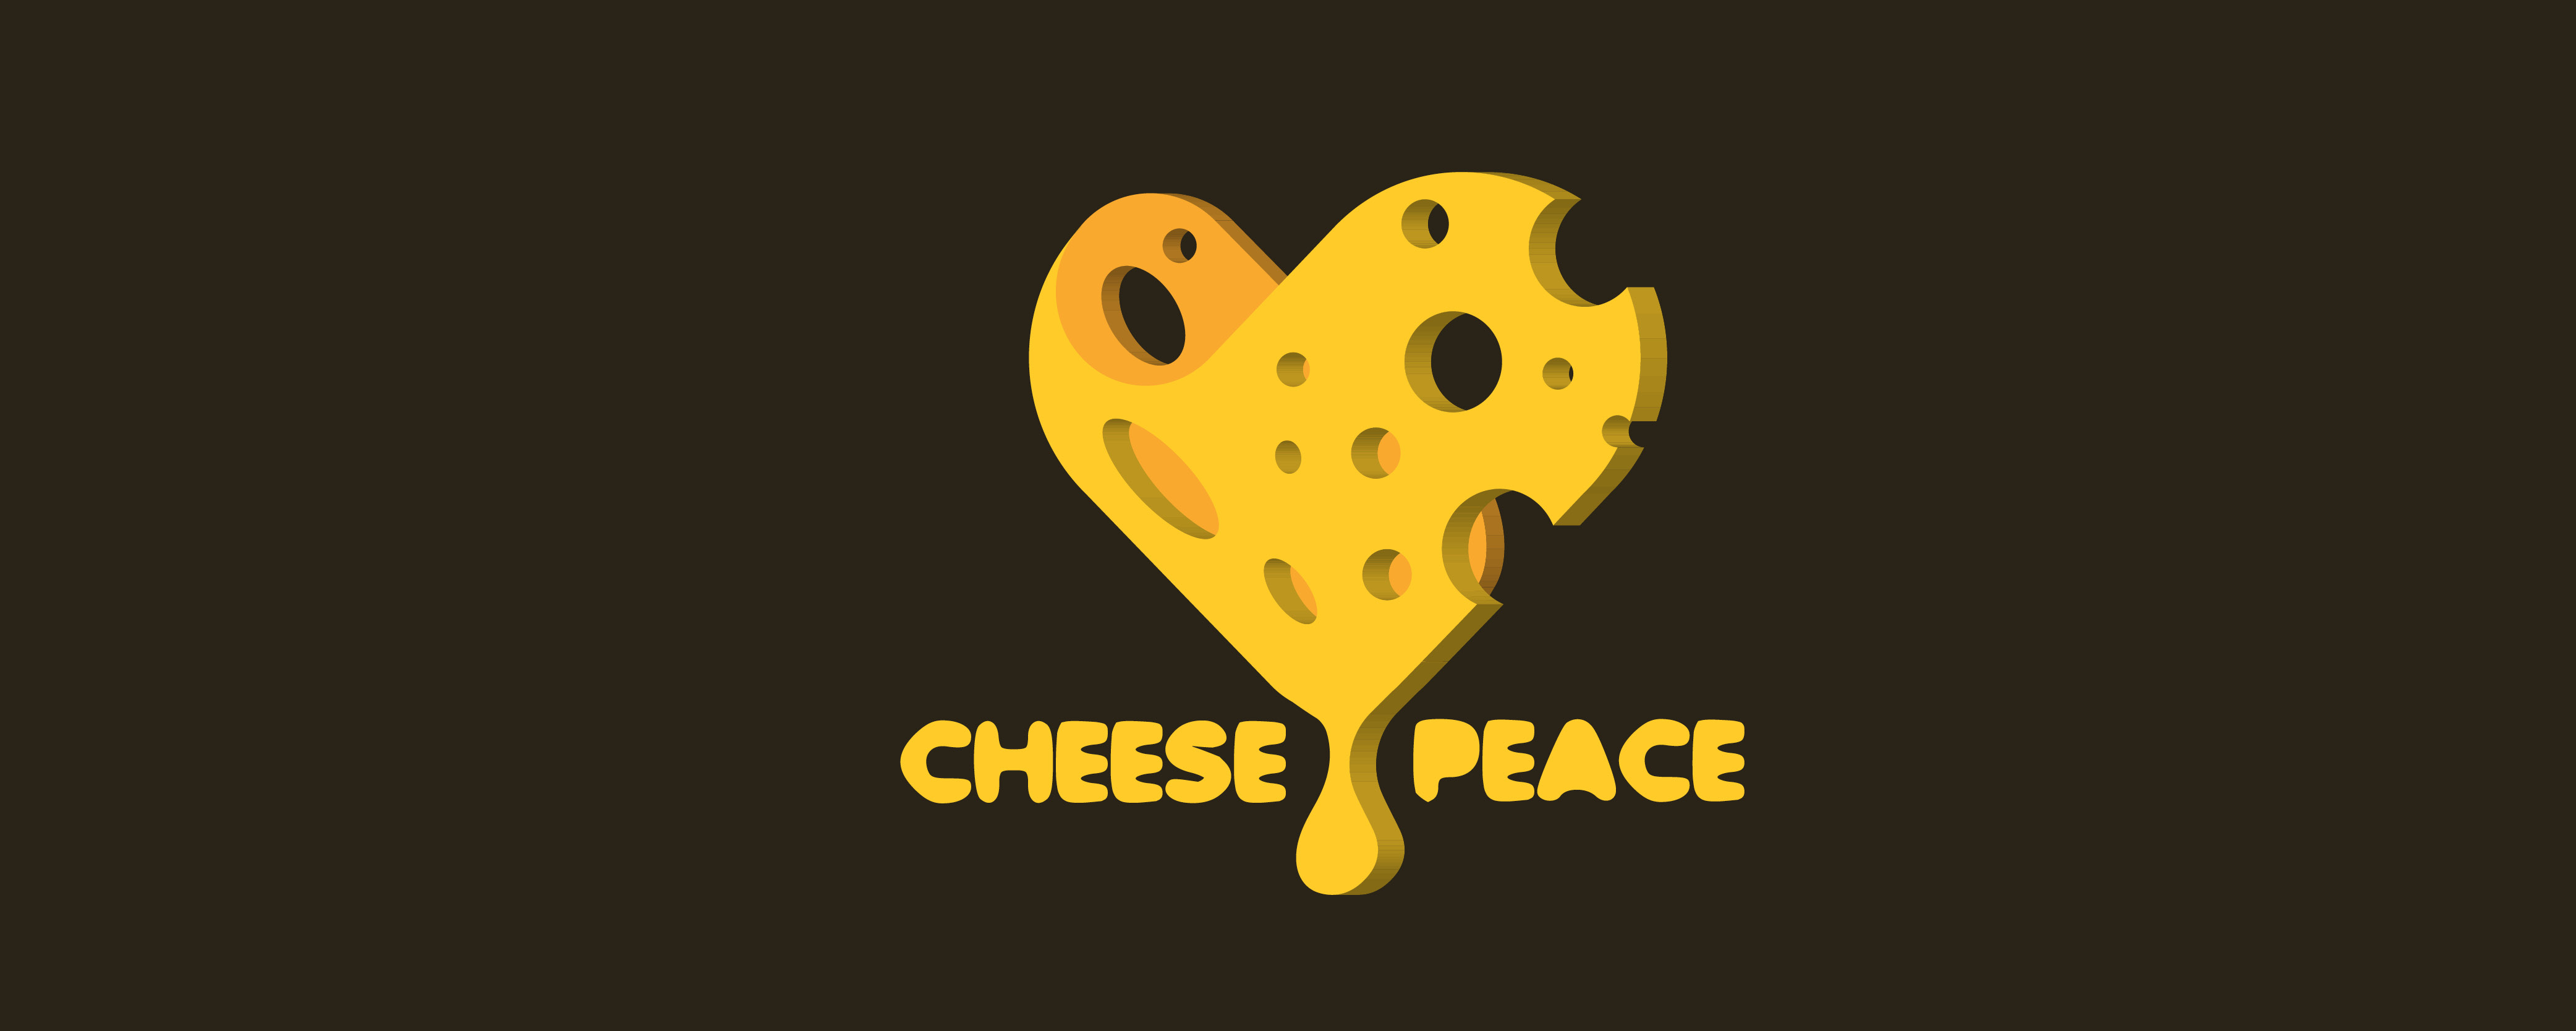 Cheese and Peace Logo Design, Branding, Freelance Grafik Designer Berlin